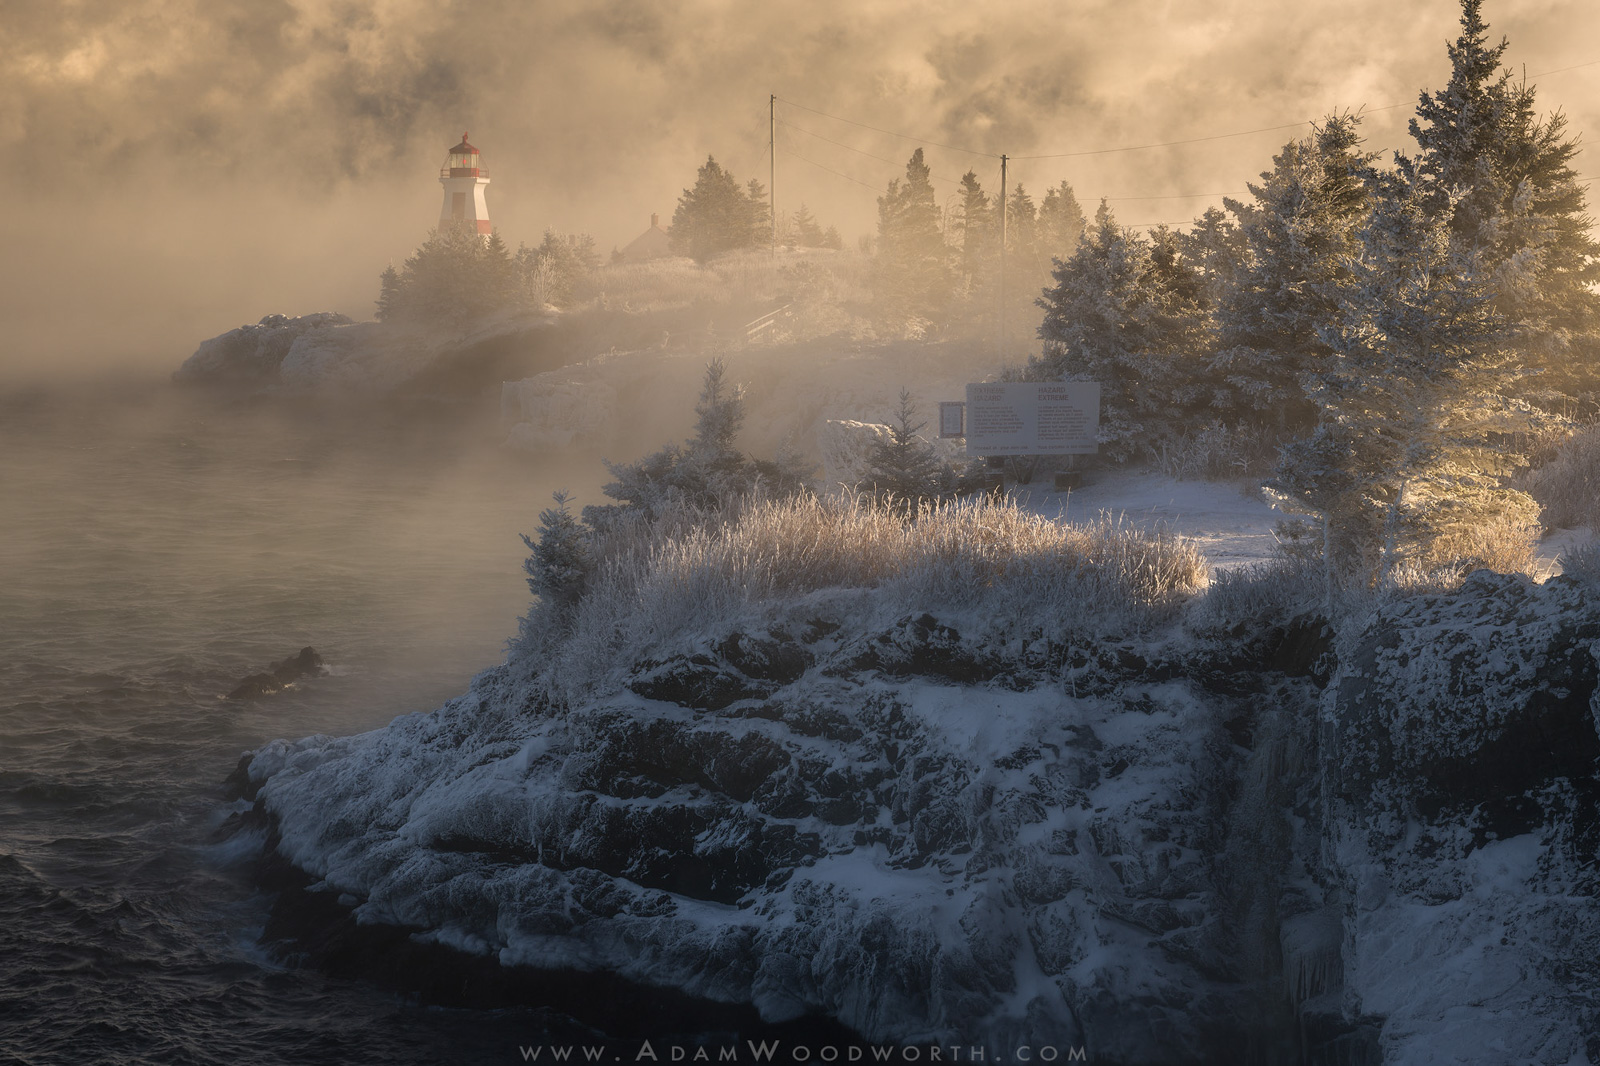 Canada, Winter, bay of fundy, campobello island, east quoddy lighthouse, fog, head harbor lighthouse, lighthouse, maritimes, mist, new brunswick, rime rice, sea smoke, seacoast, sunrise, photo